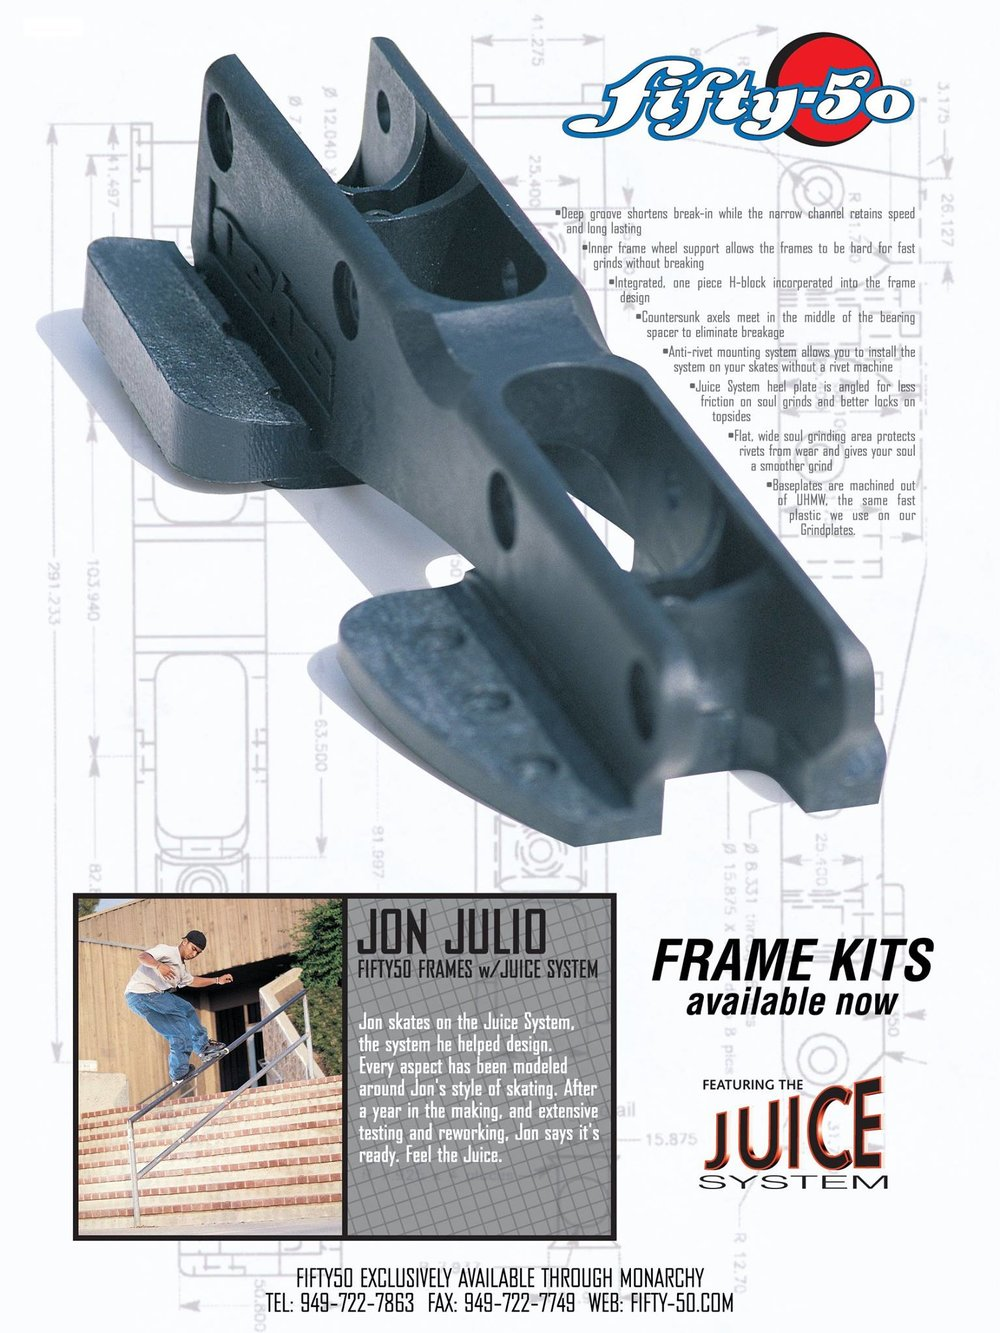 After testing for a few weeks we knew the moulded frames were going to be good. Jon Julio was featured in the first ad highlighting the technical benefits of the frame and the Juice System.